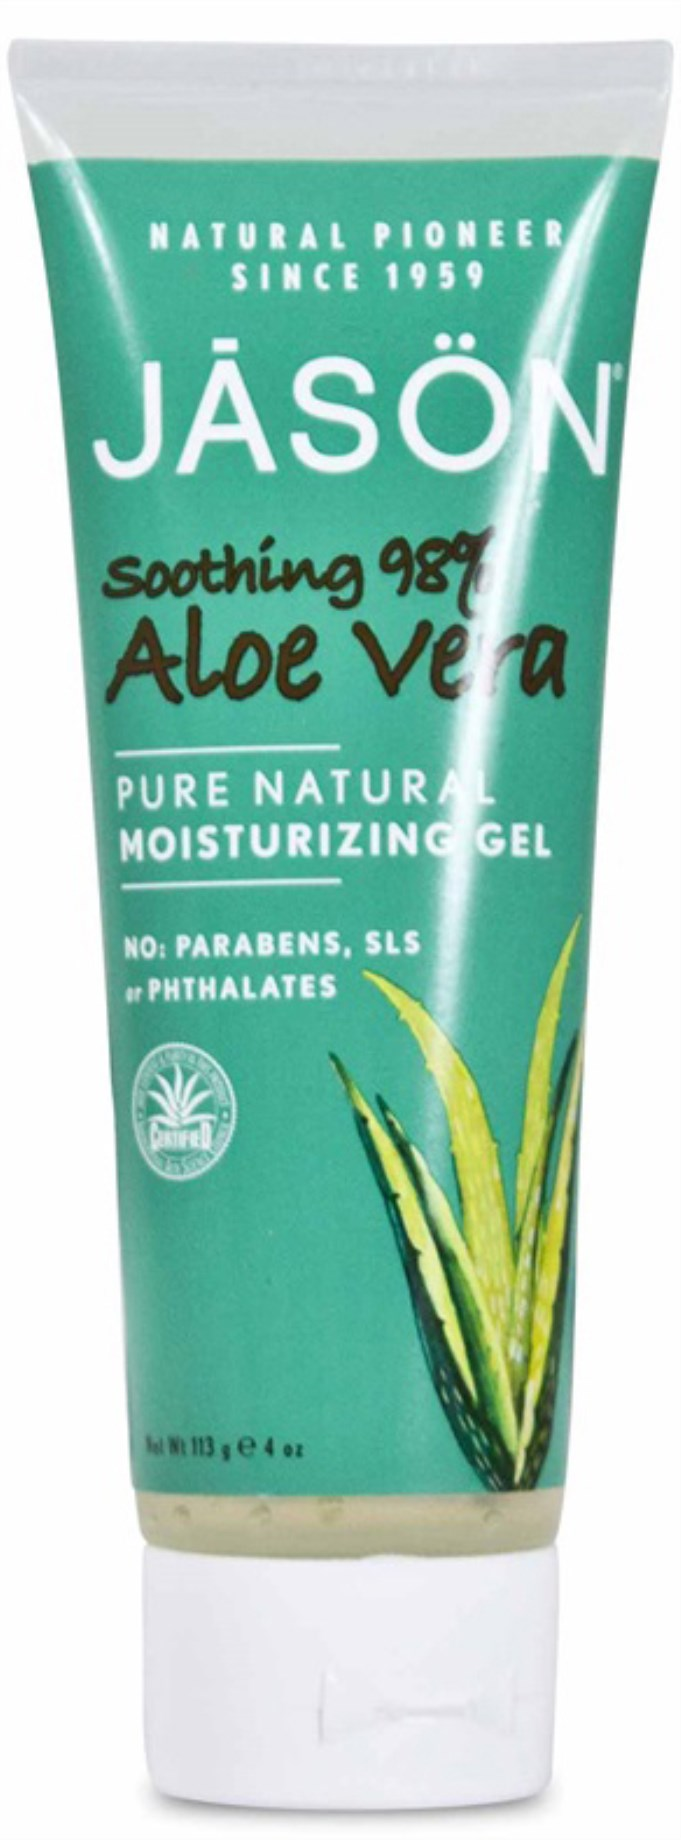 Jason Aloe Vera 98% Moisturizing Gel,  - Jason